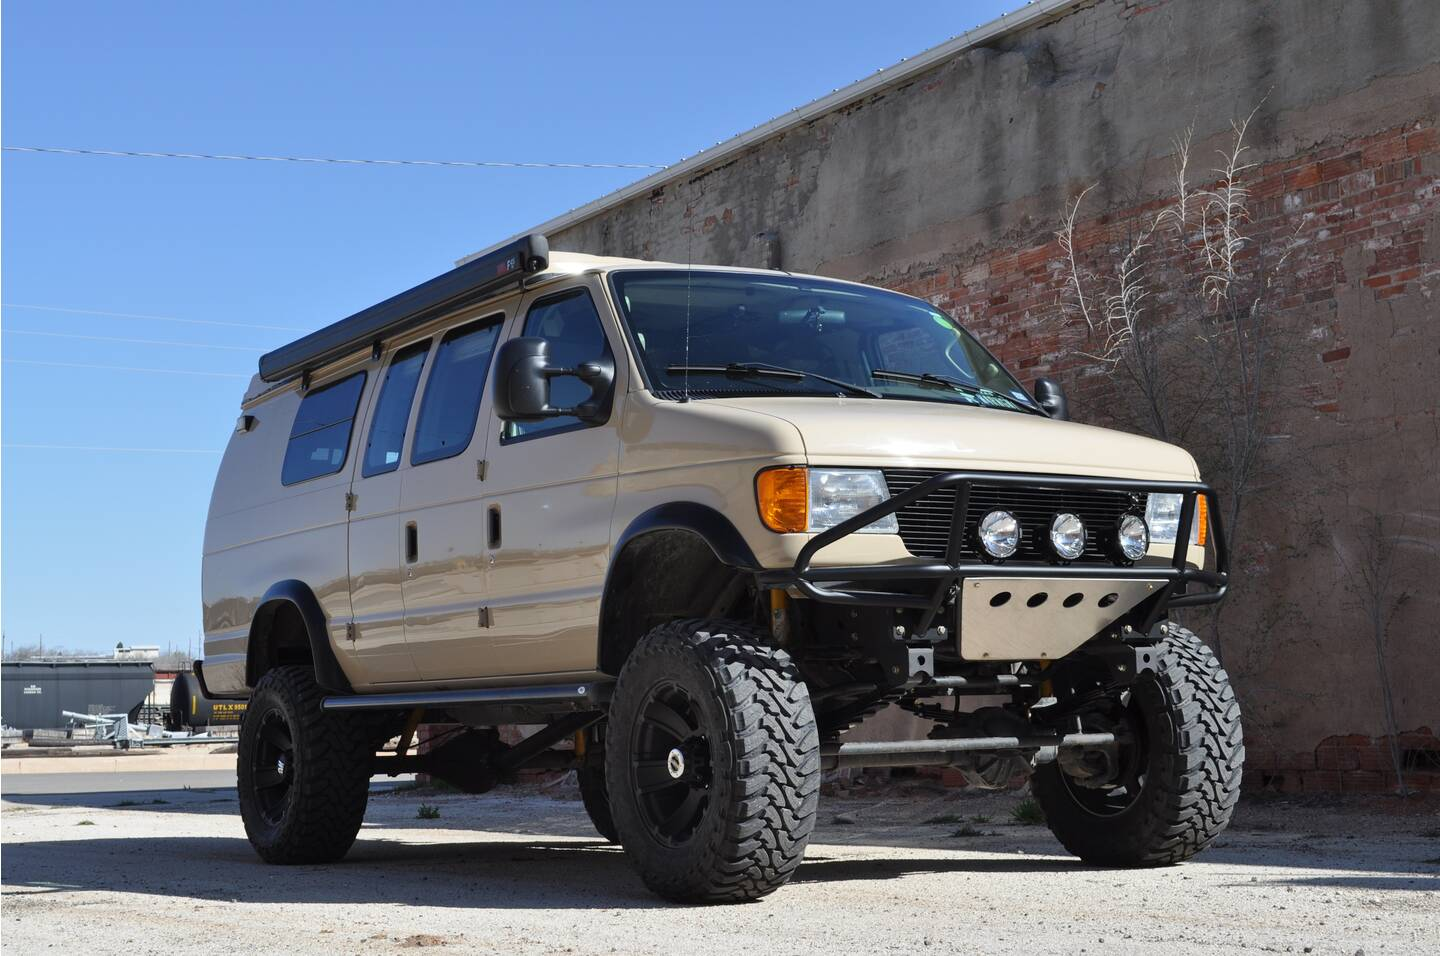 Sportsmobile 4x4 Vans Are All The Rage In Adventure Travel